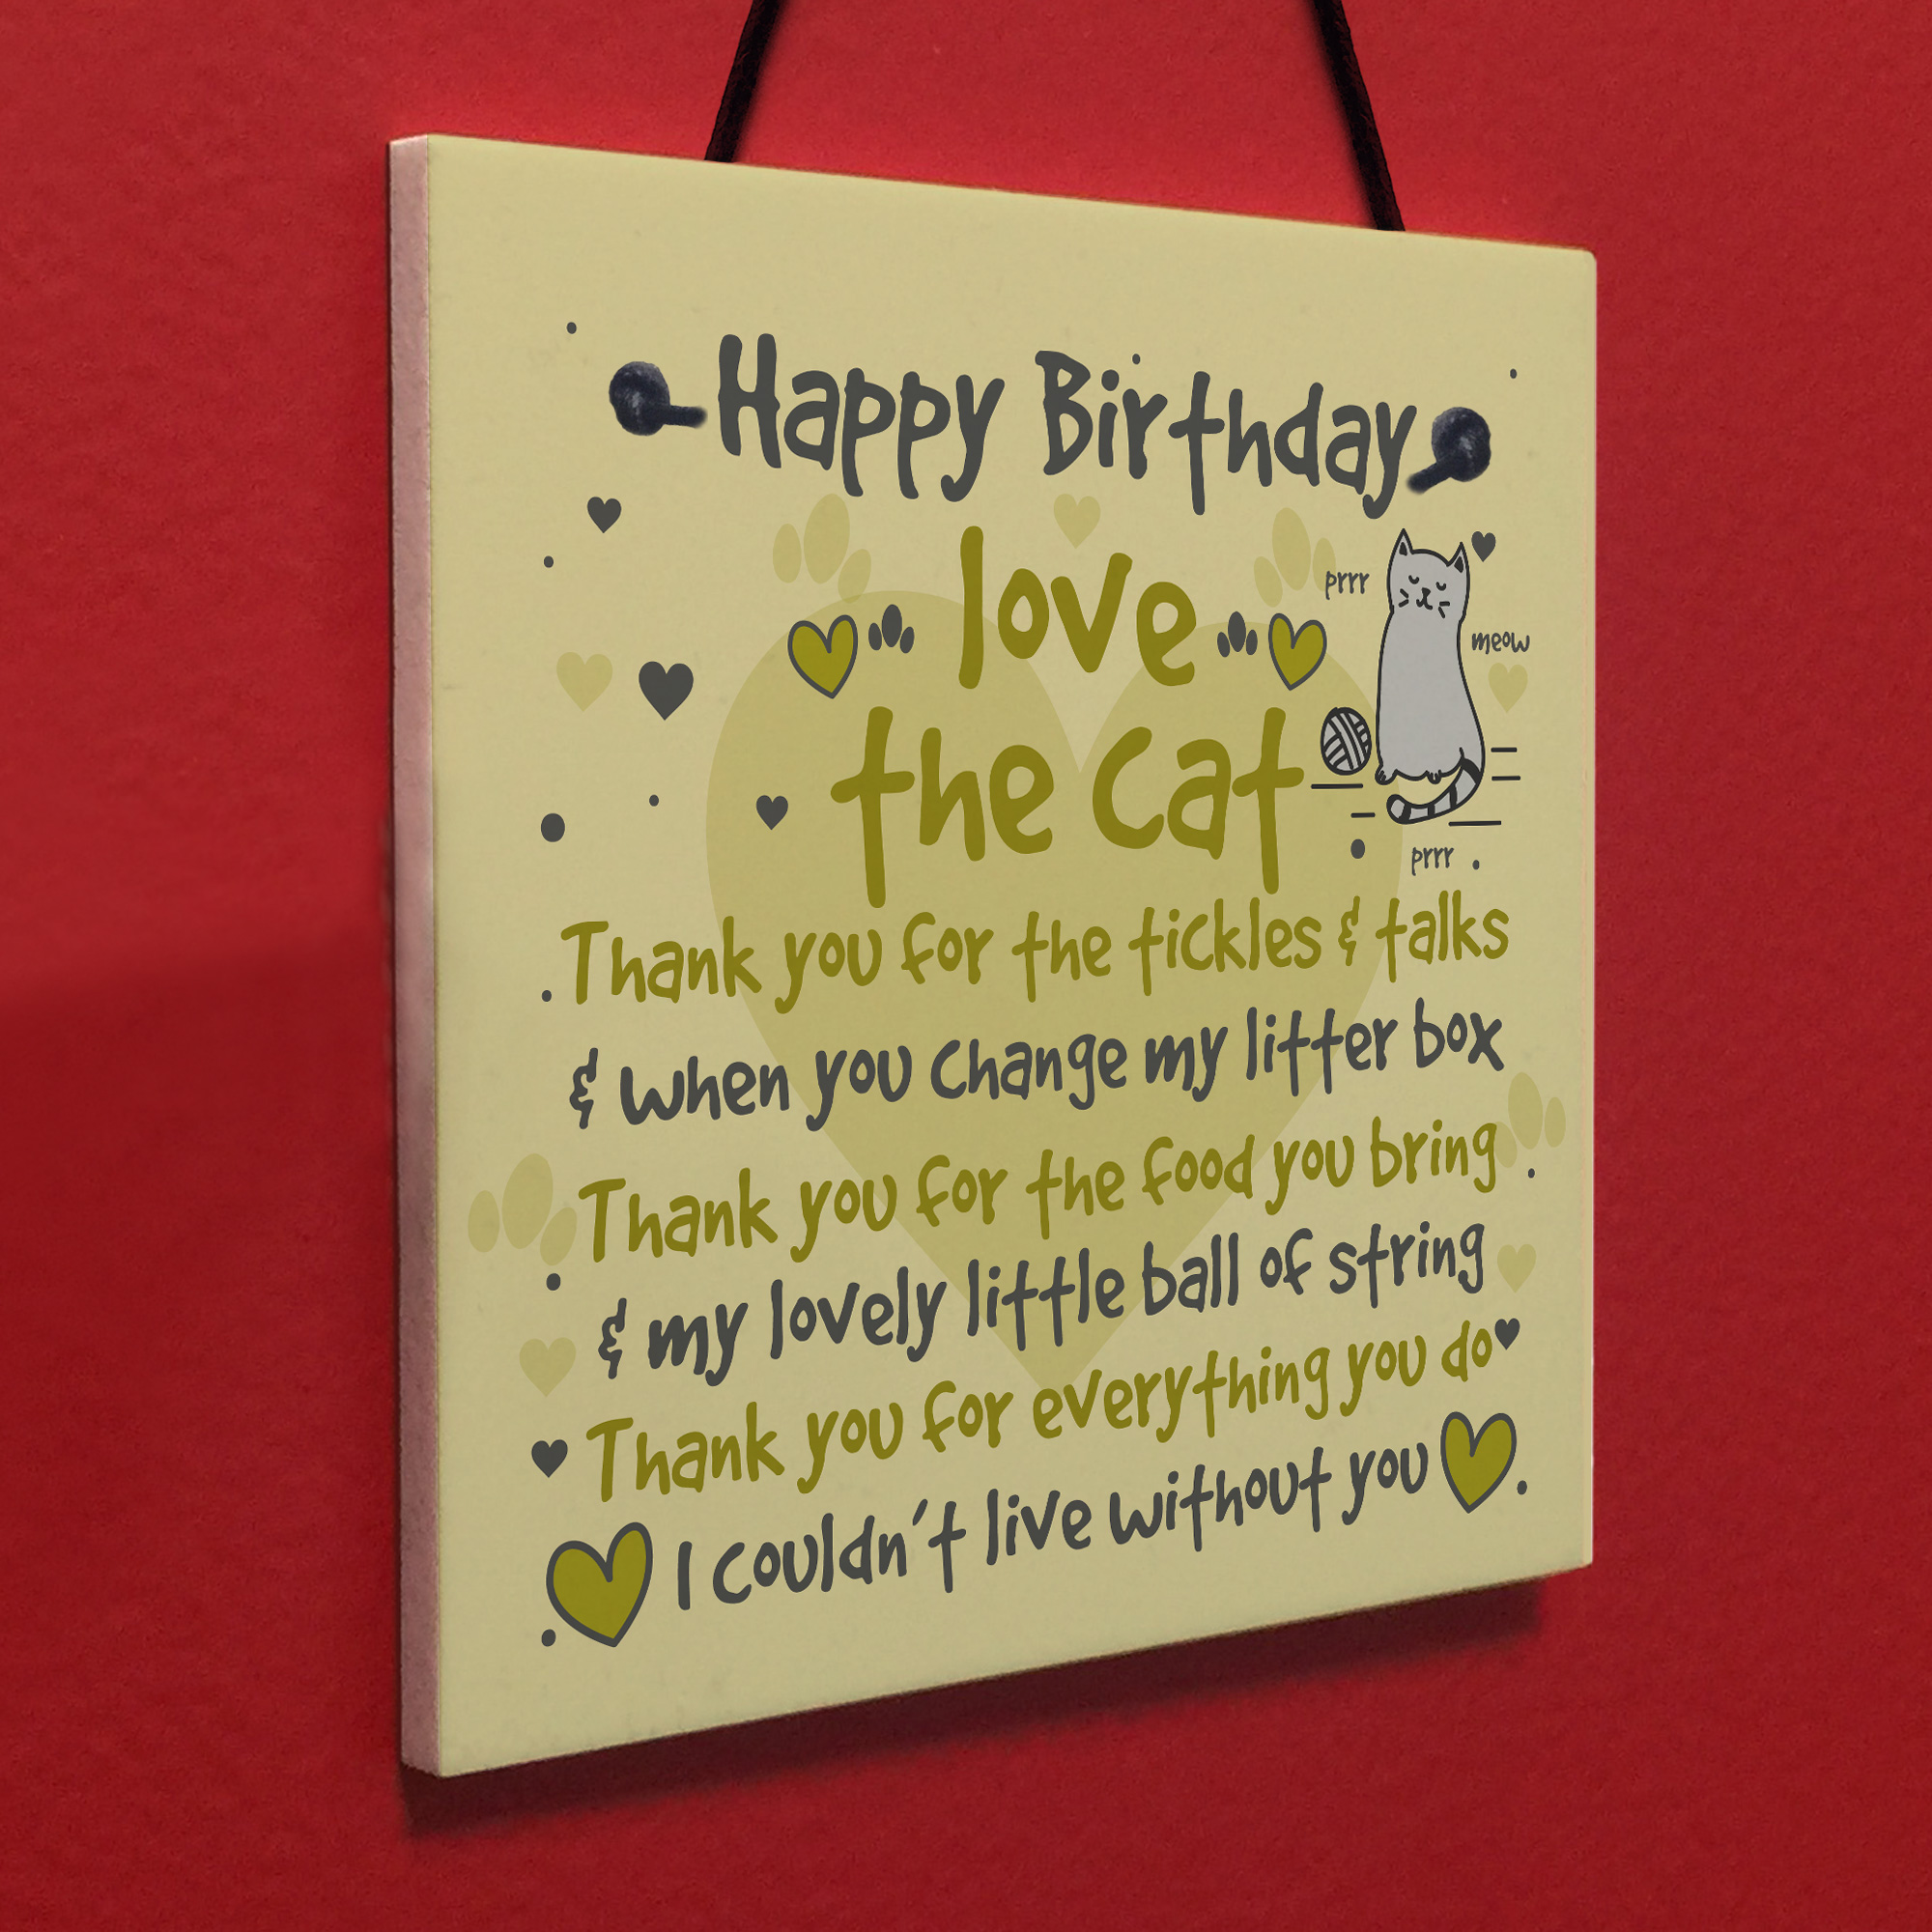 Details About Funny Rude Birthday Card Mum Dad Wife Friend Daughter Sister CAT PRESENT Plaque